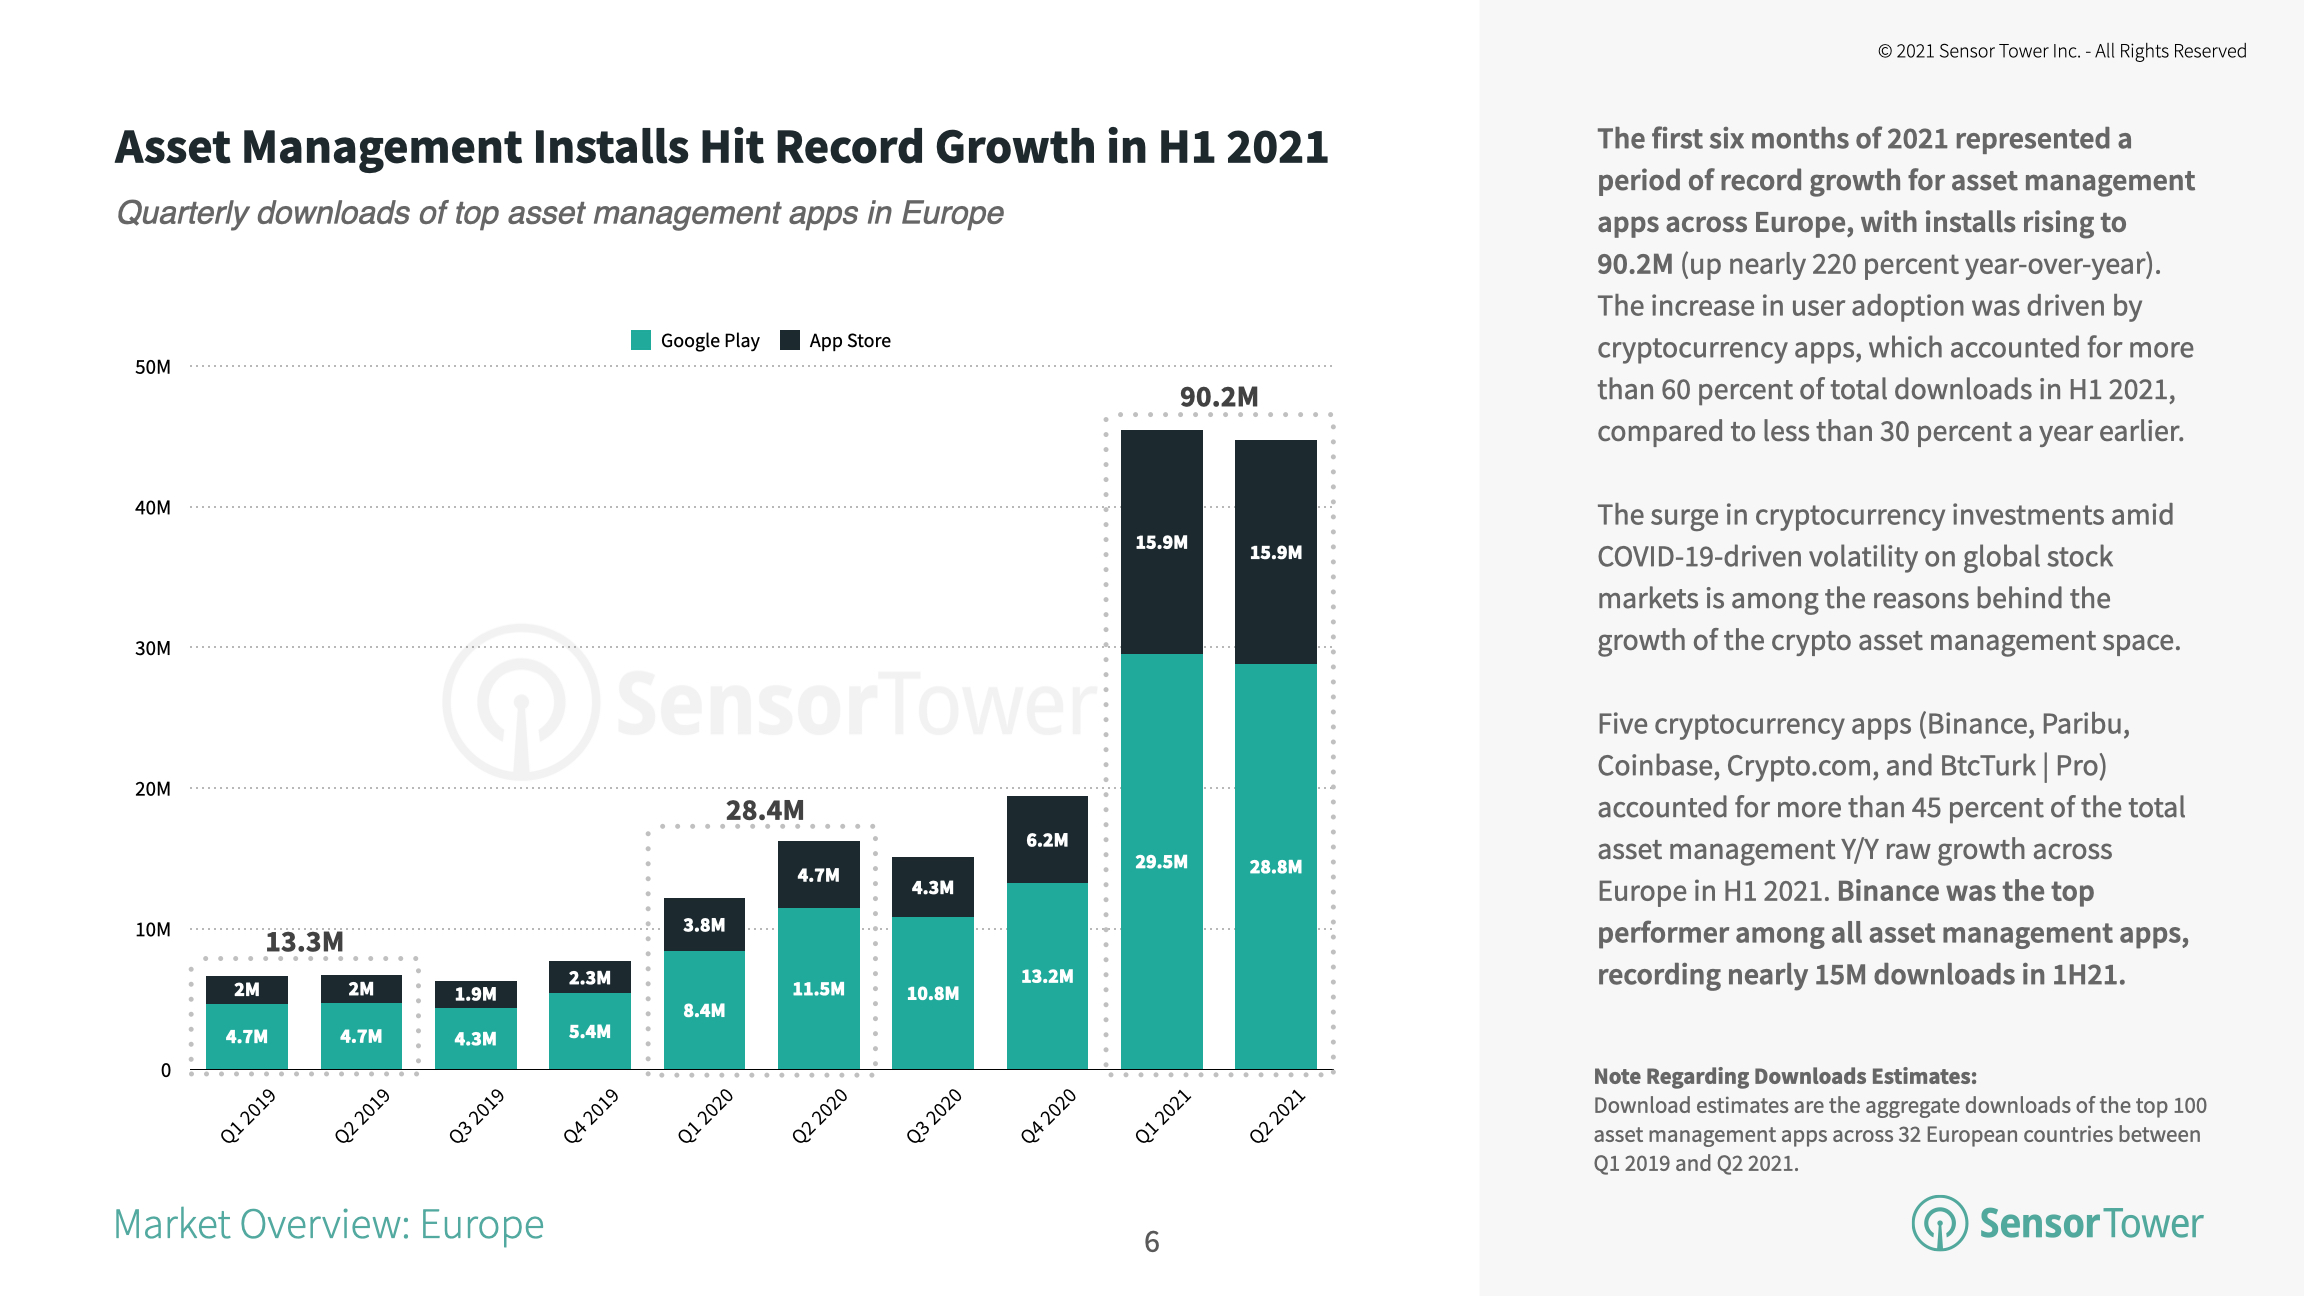 Installs of top asset management apps in Europe reached 90.2 million in H1 2021, up 218 percent year-over-year